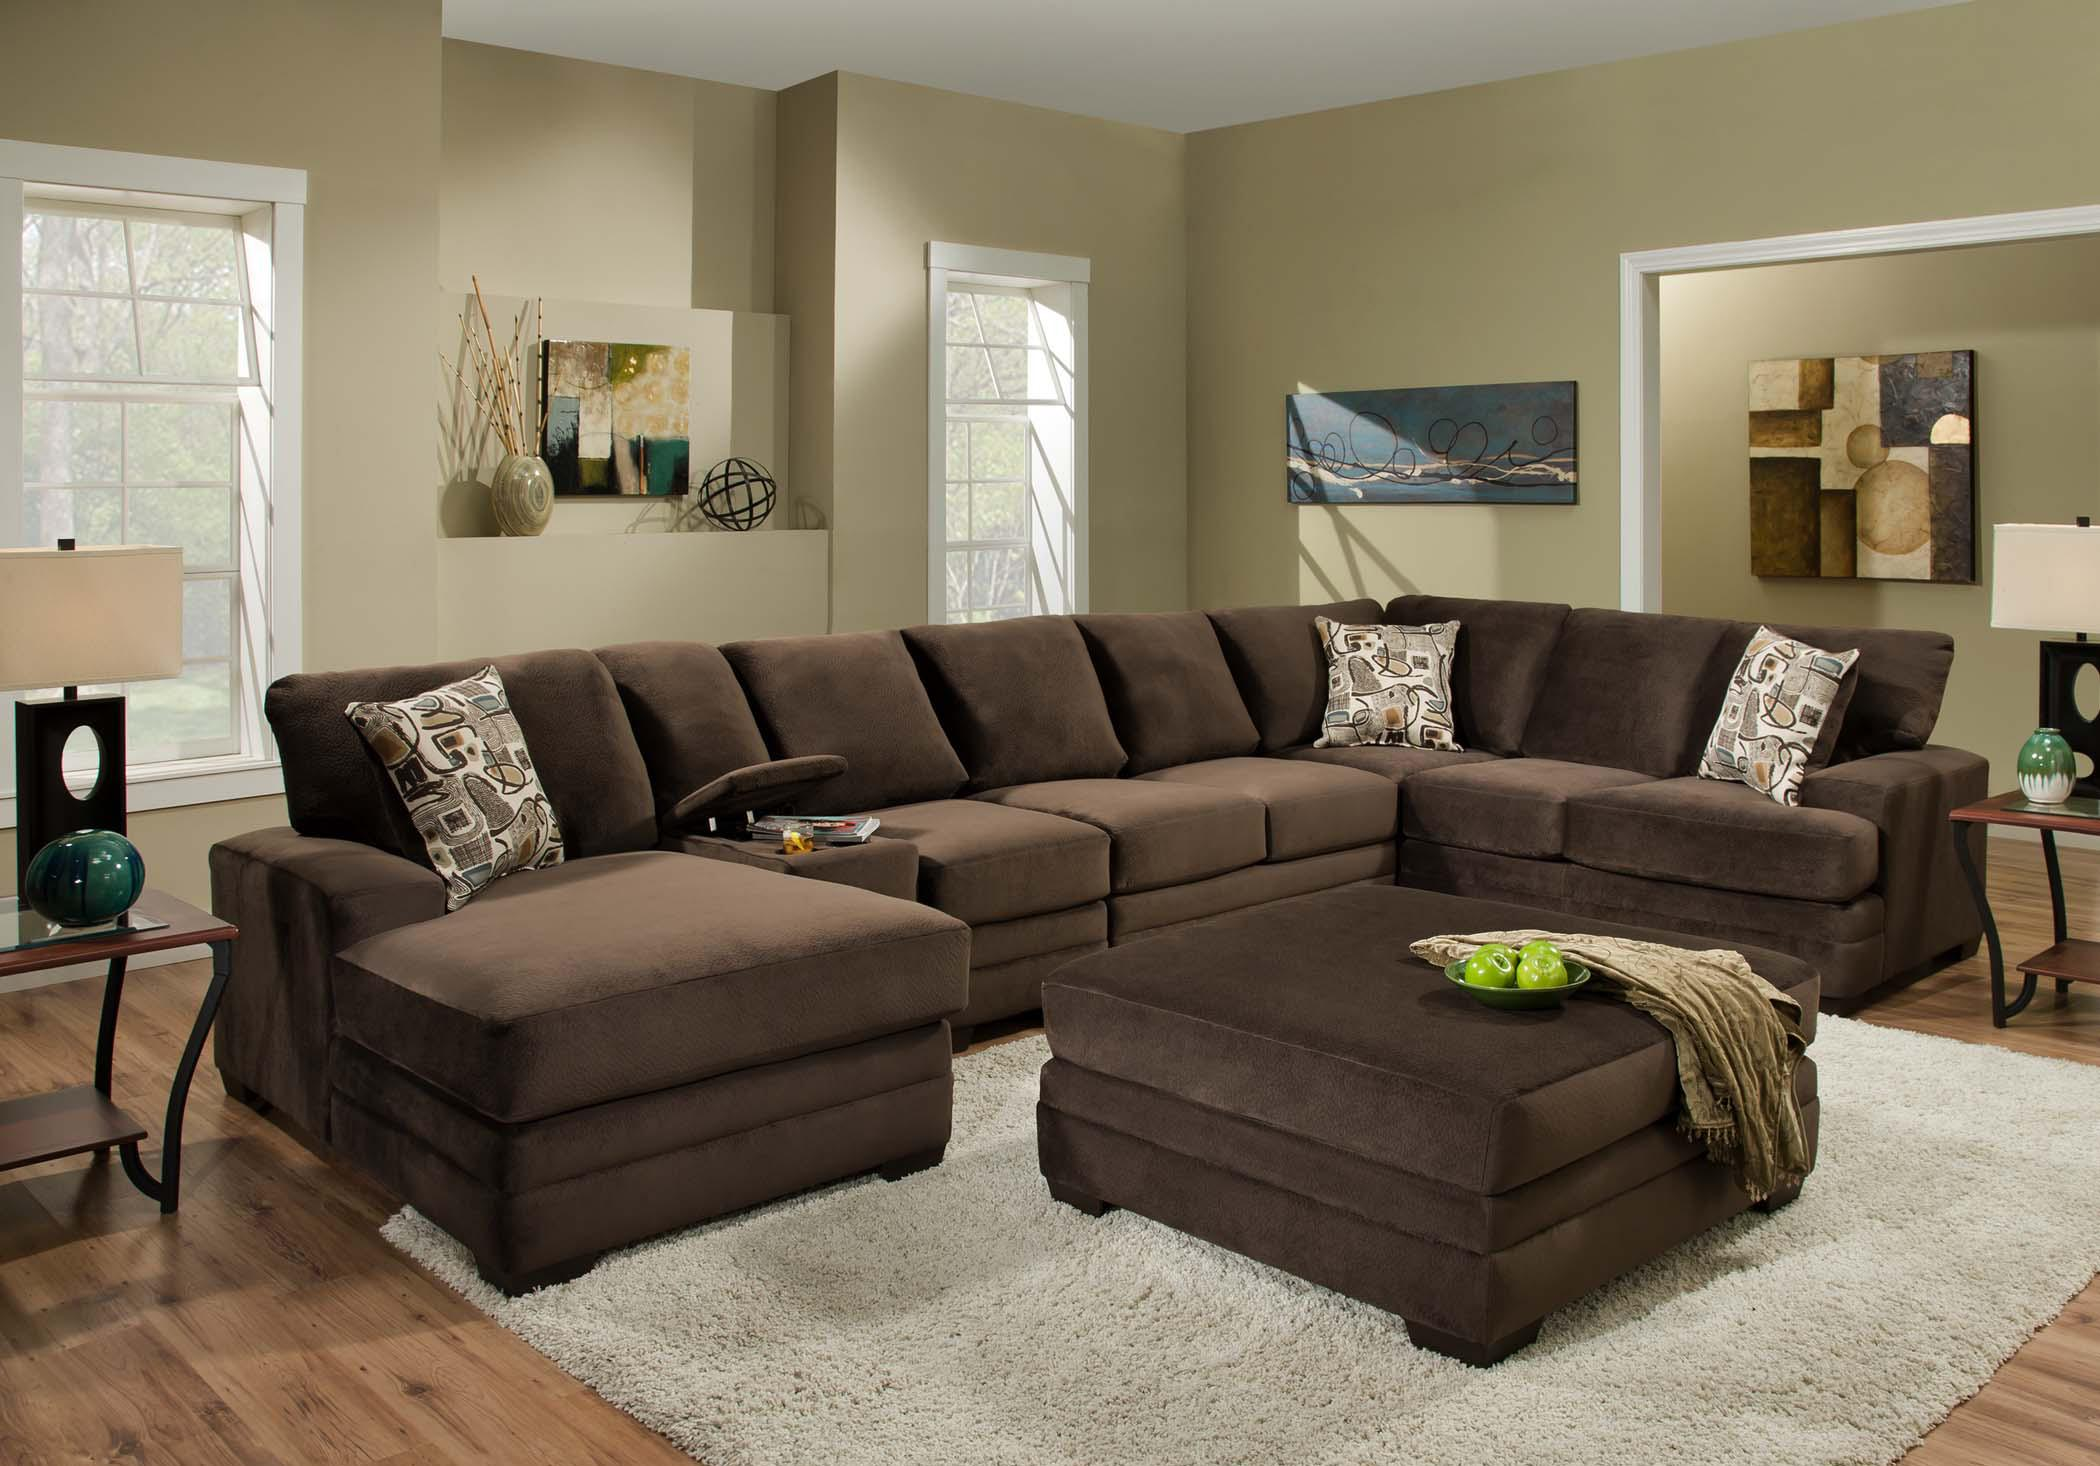 American furniture 3500 contemporary sectional sofa with 6 for American home life furniture